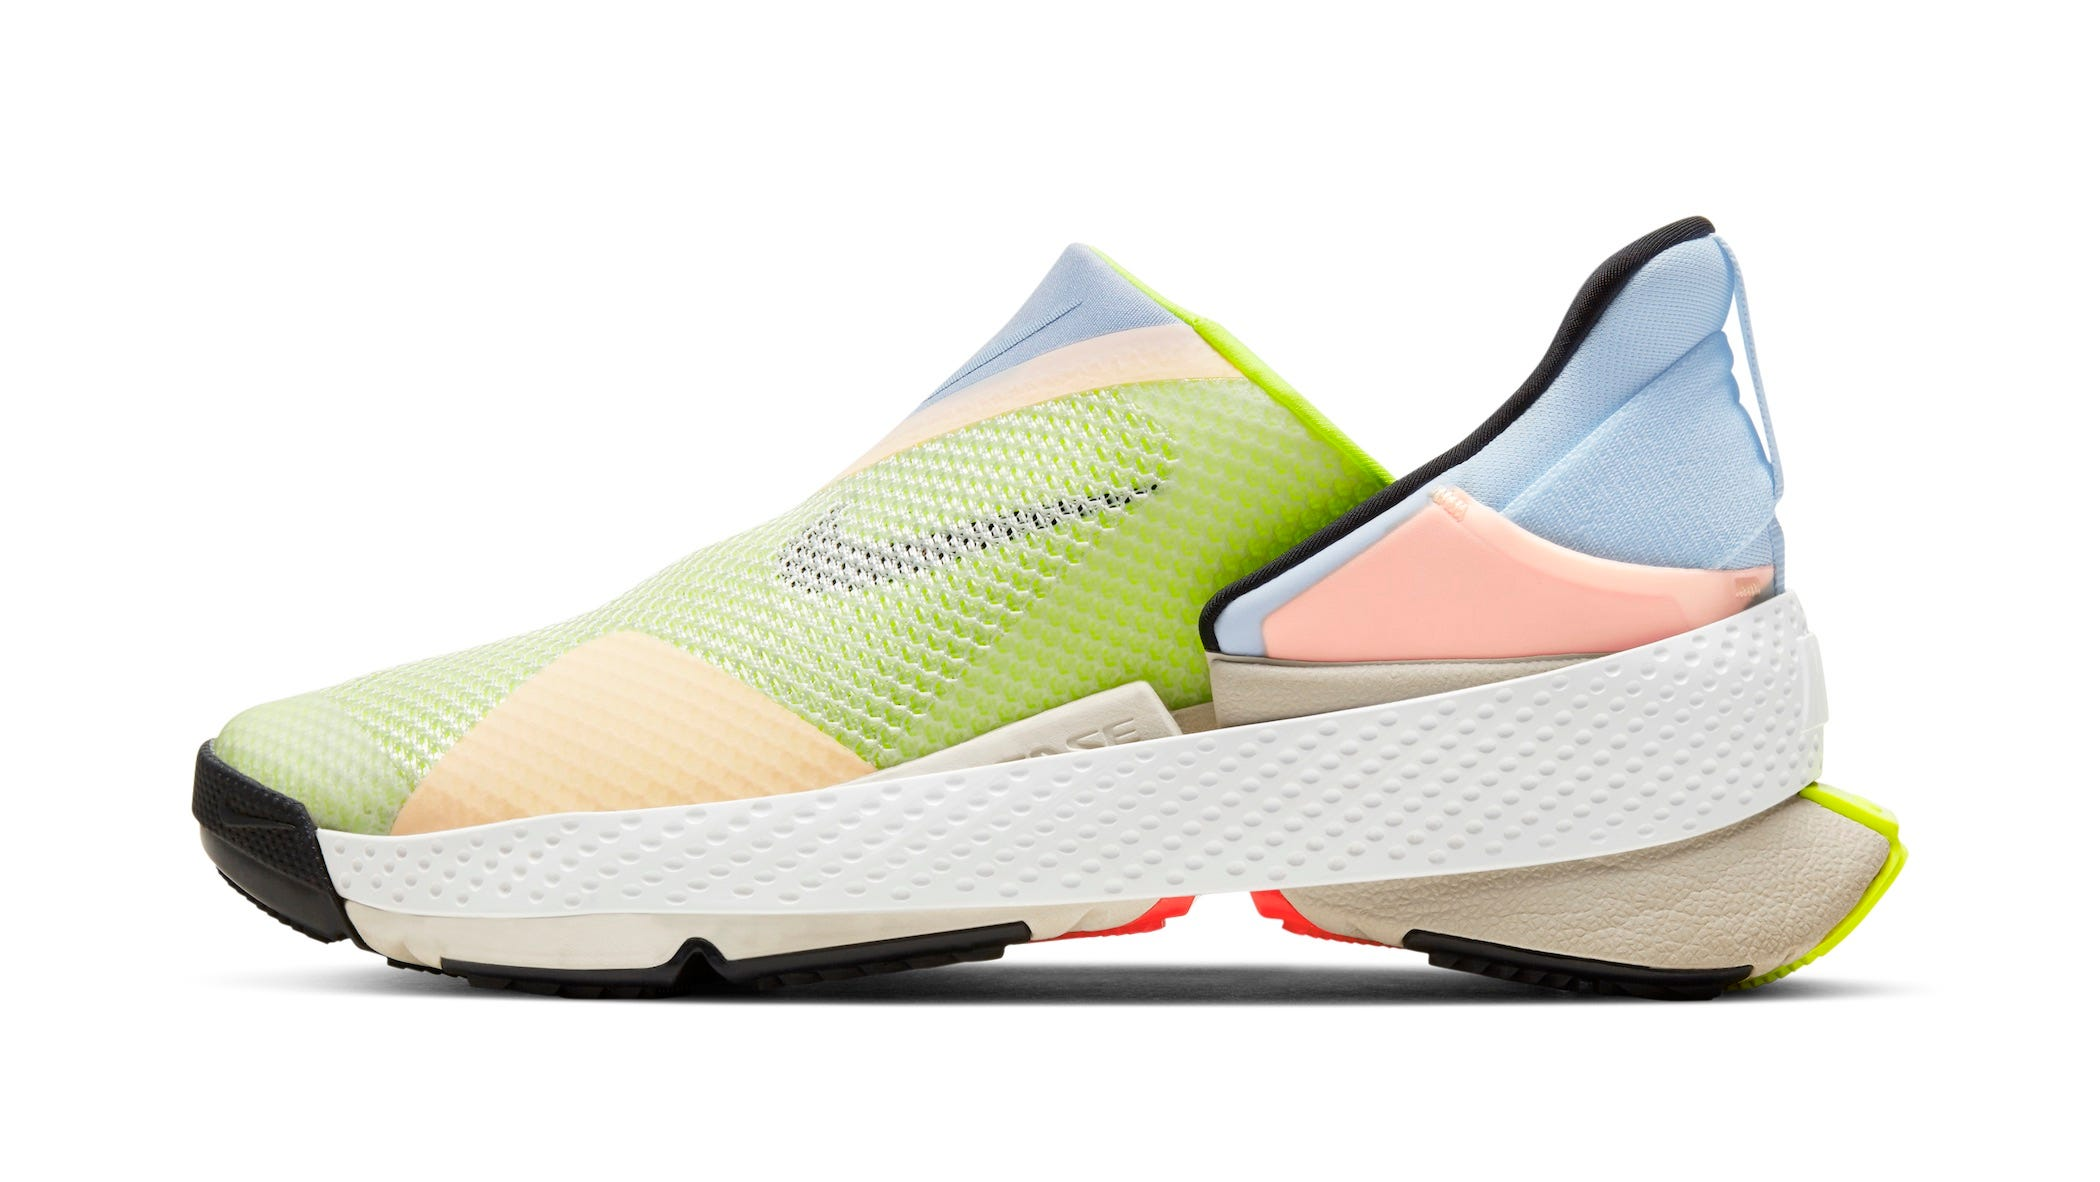 Nike's new GO FlyEase sneakers let you slip on your shoes 'hands free'